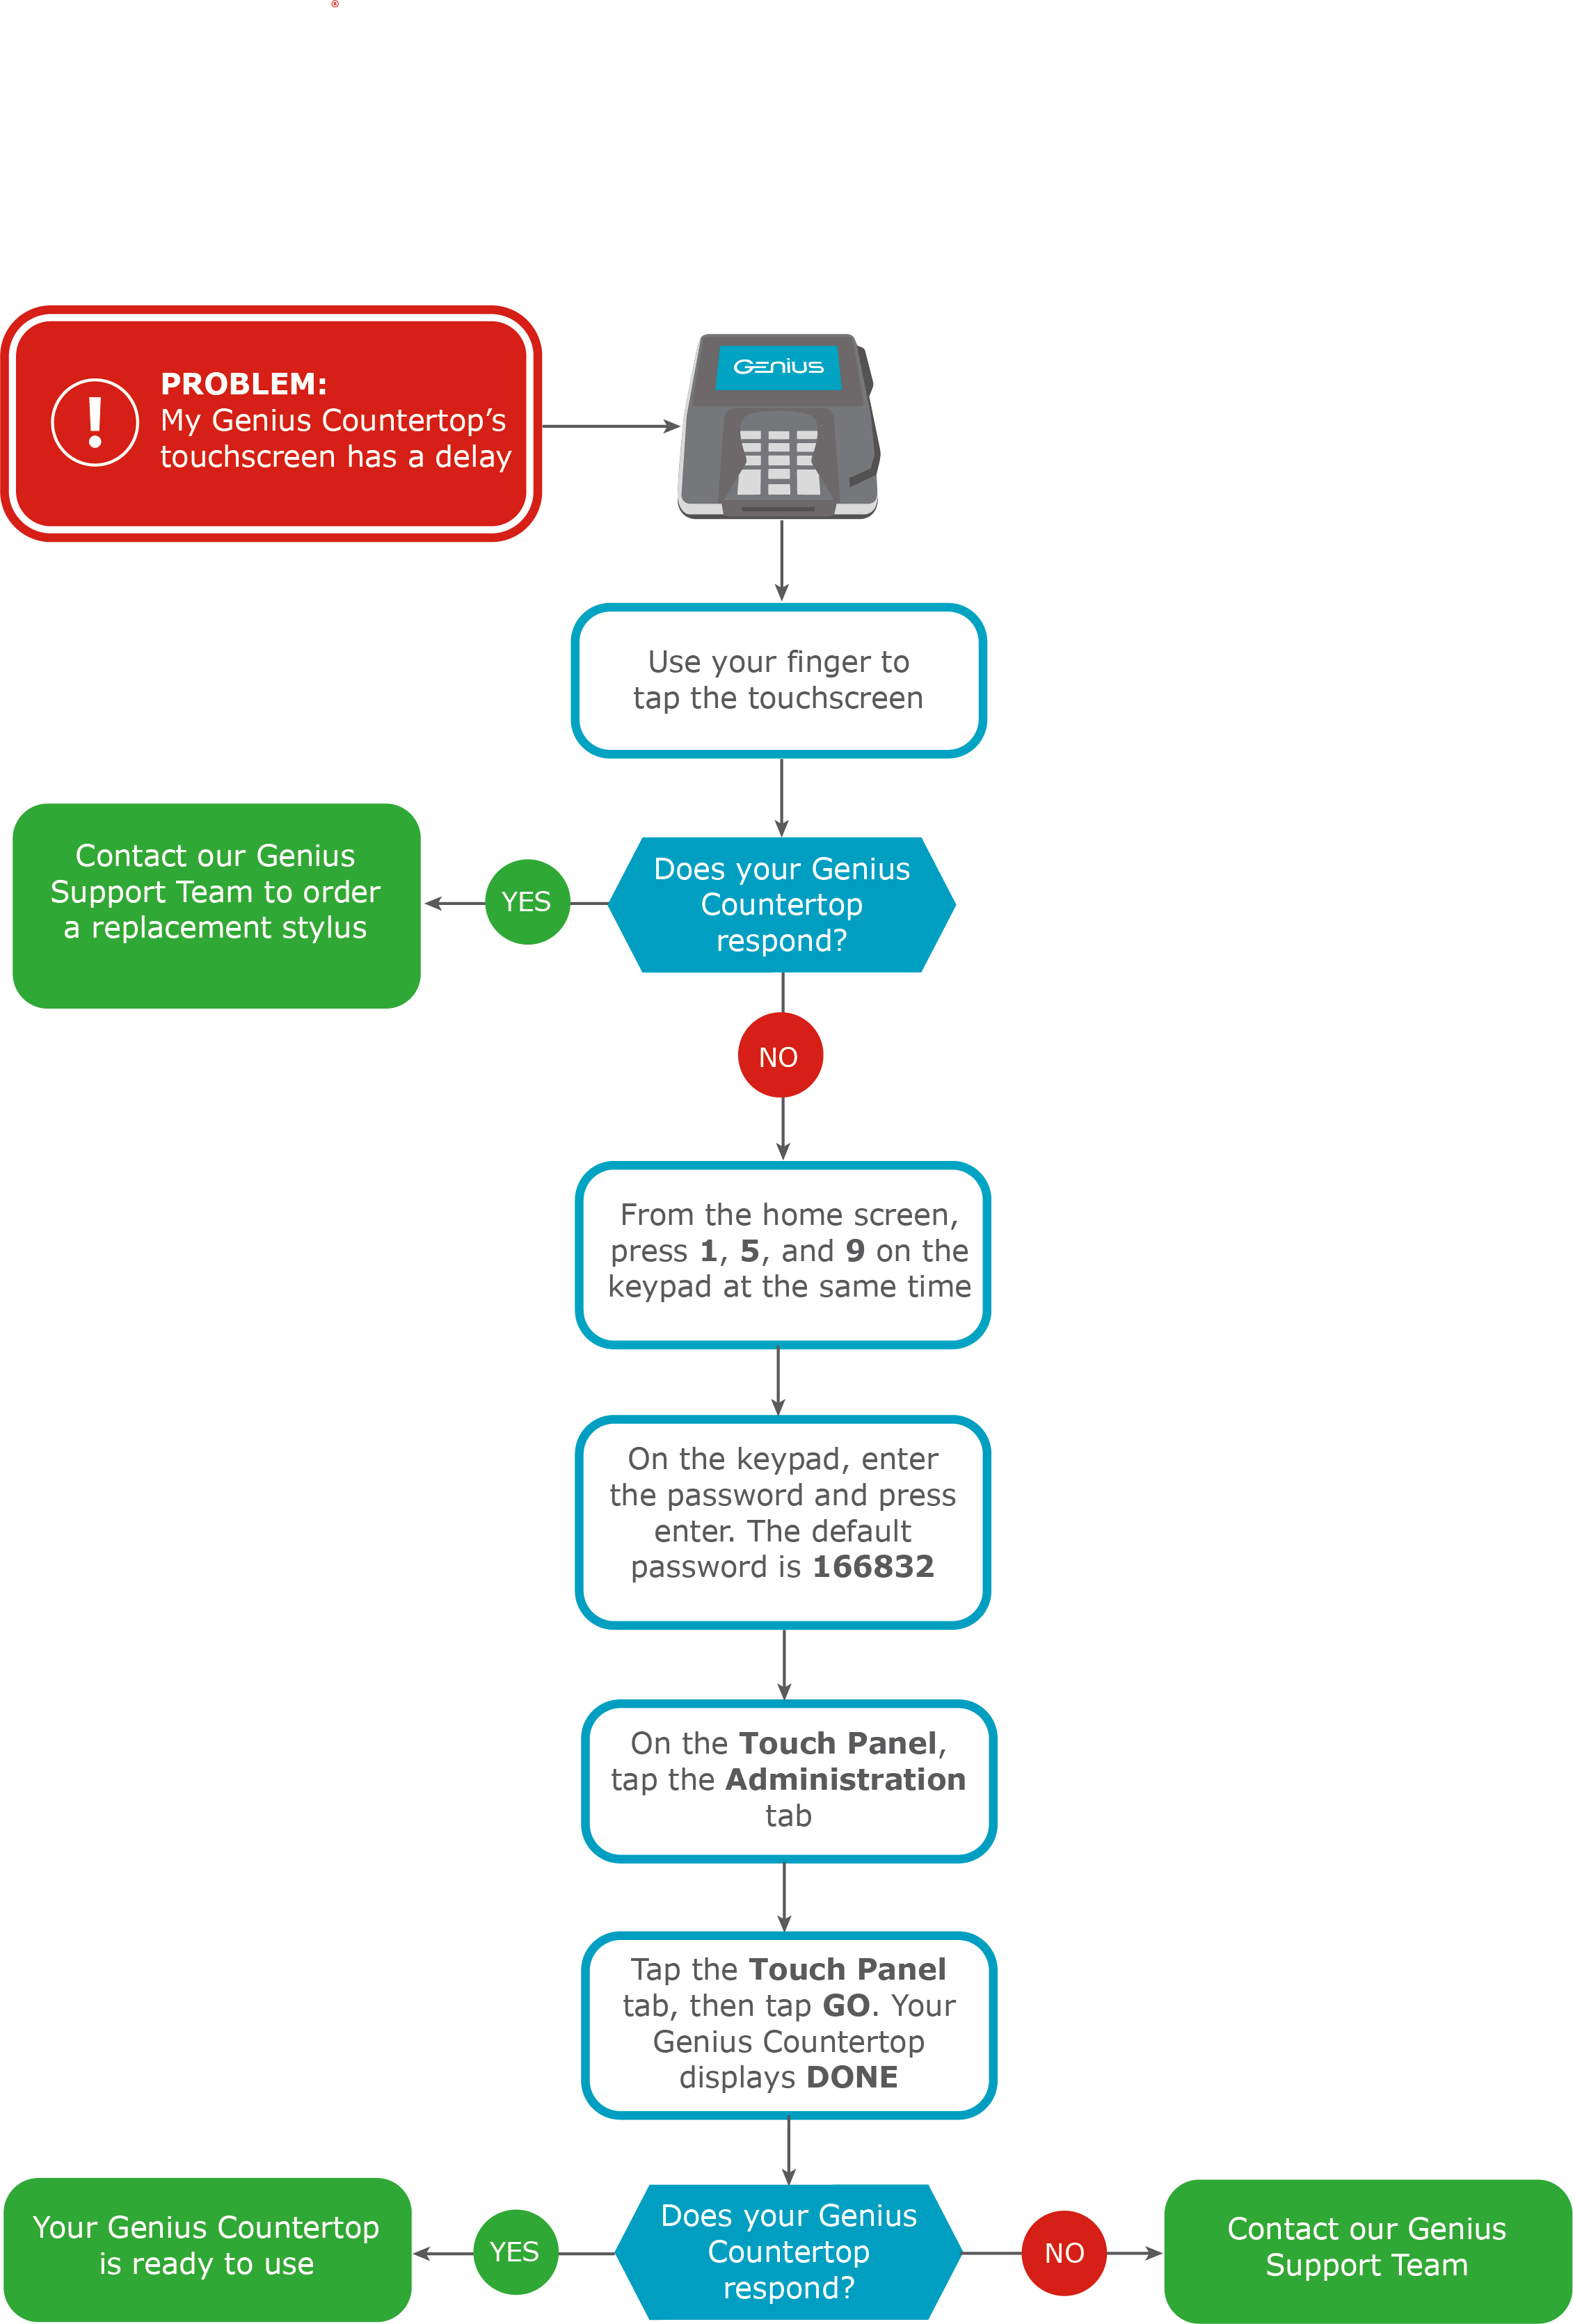 Flowchart with steps to fix a Genius device if the screen has a delay.